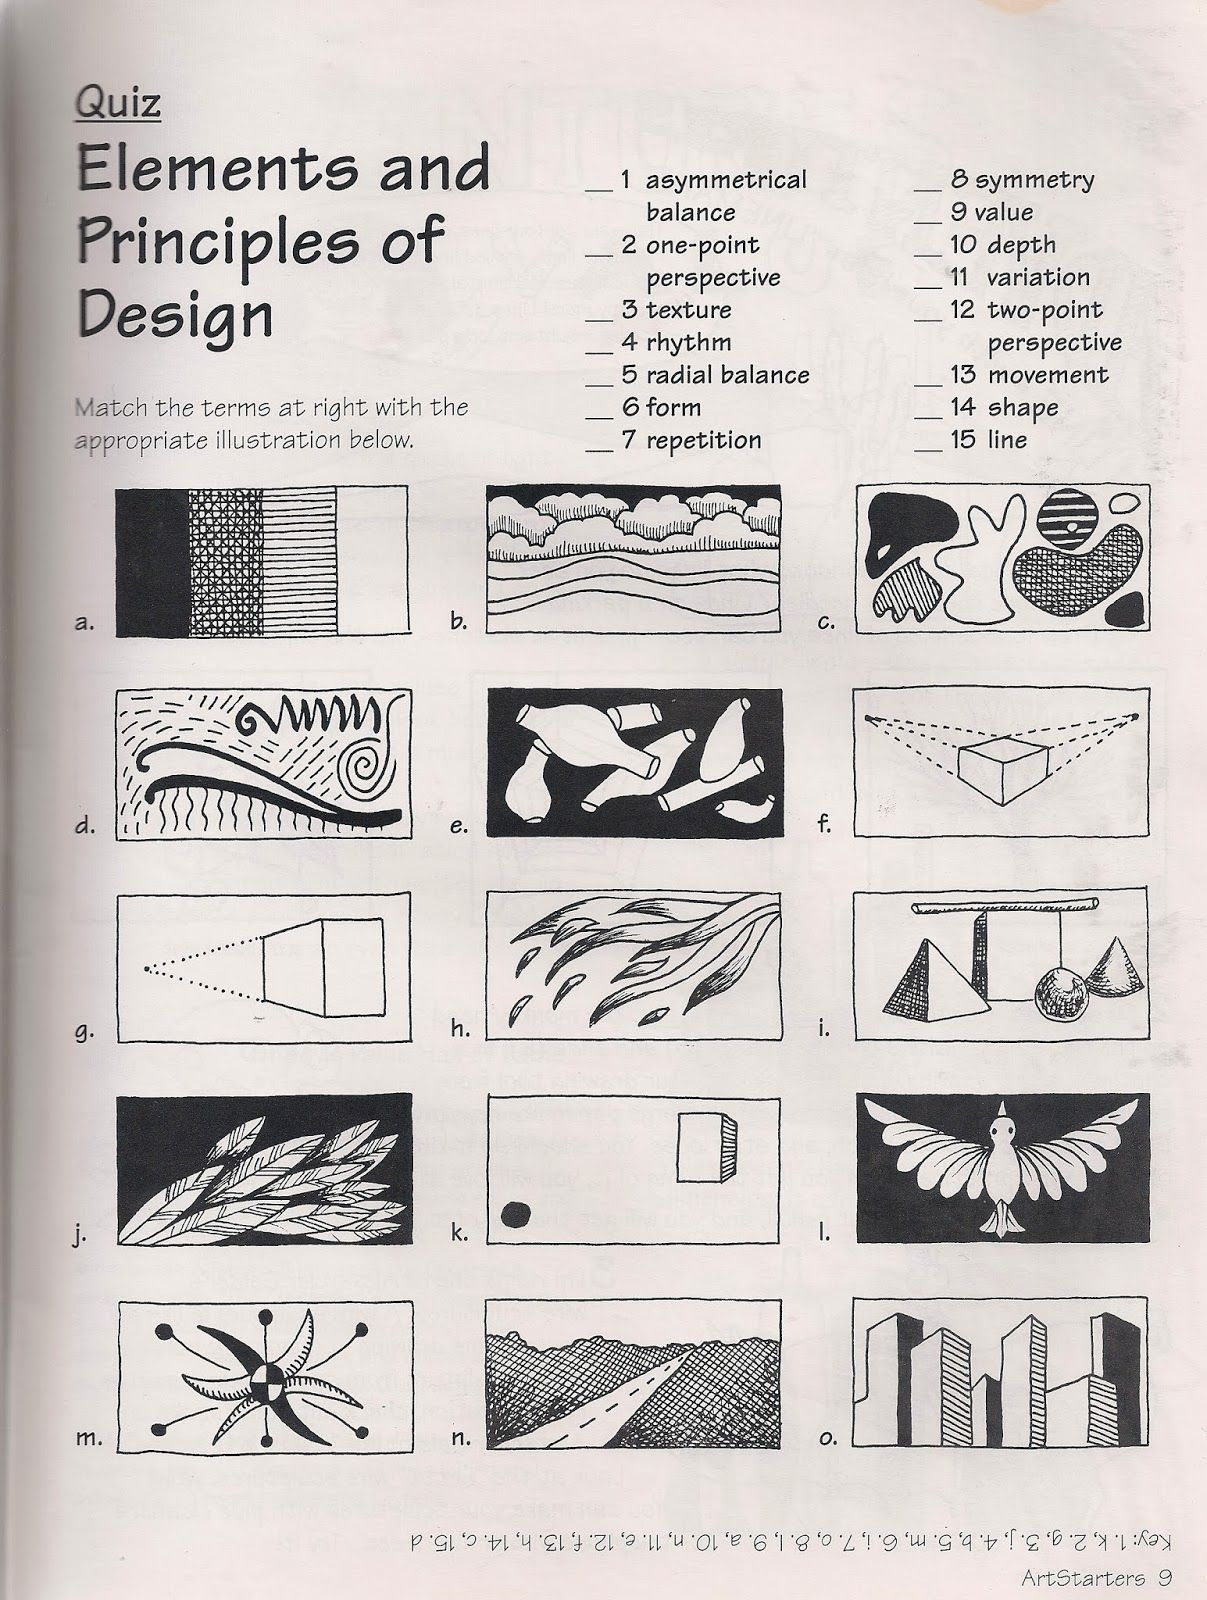 What Are The Elements Of Art And Design : No corner suns the elements and principles of art